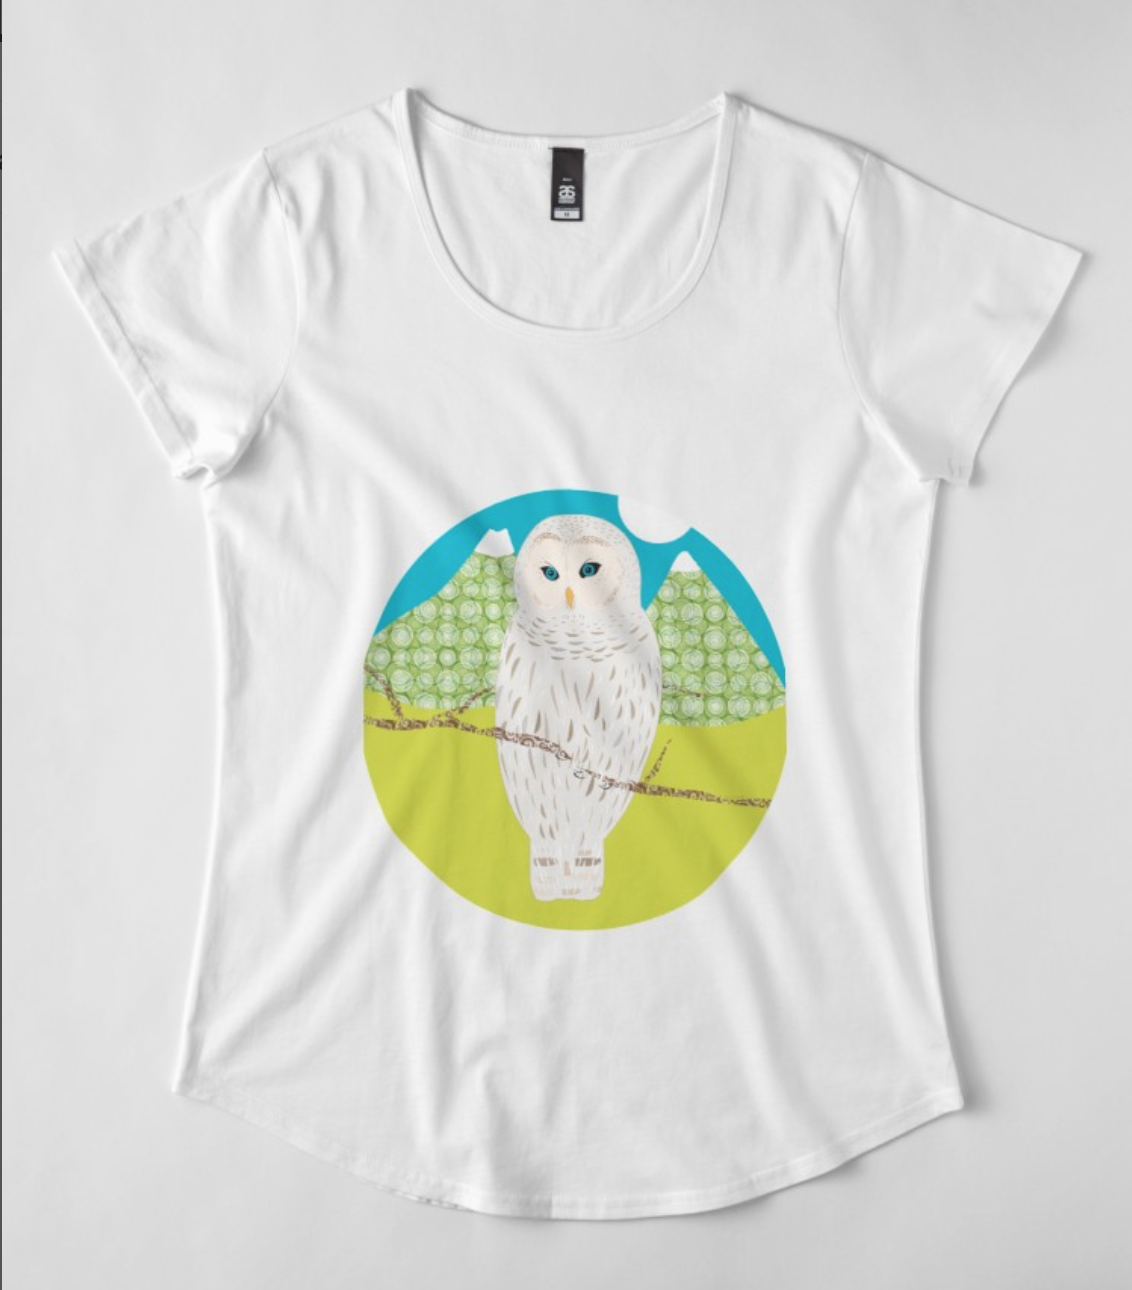 "Tshirt ""Blanche, la chouette"" by Rosa Lee Design"